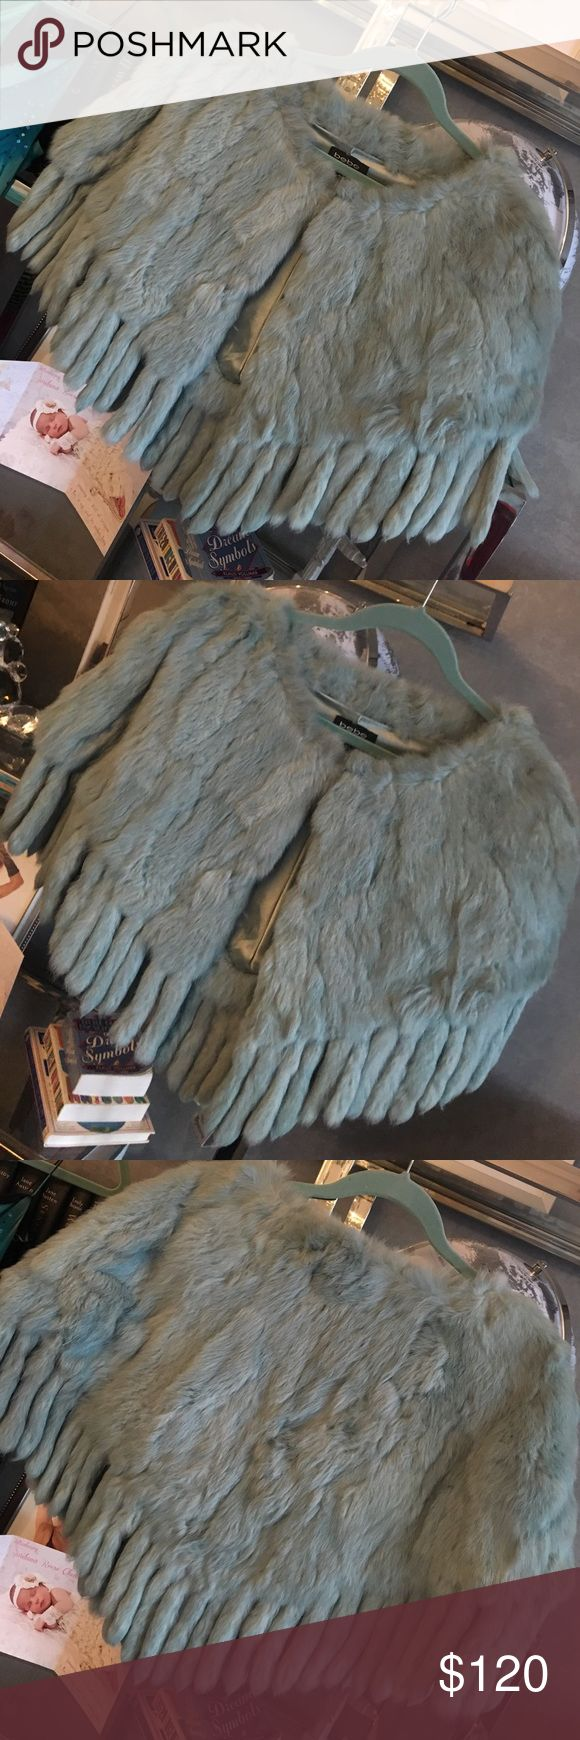 Bebe real fur Fringe jacket cape Bebe. Sz M/L. 💯 real rabbit fur. Excellent condition. Looks amazing on over a leather jacket or a cute sweater. It is a cape and has no sleeves. One cape, tag has both sizes on it so I'm listing it as both M and L. bebe Jackets & Coats Capes